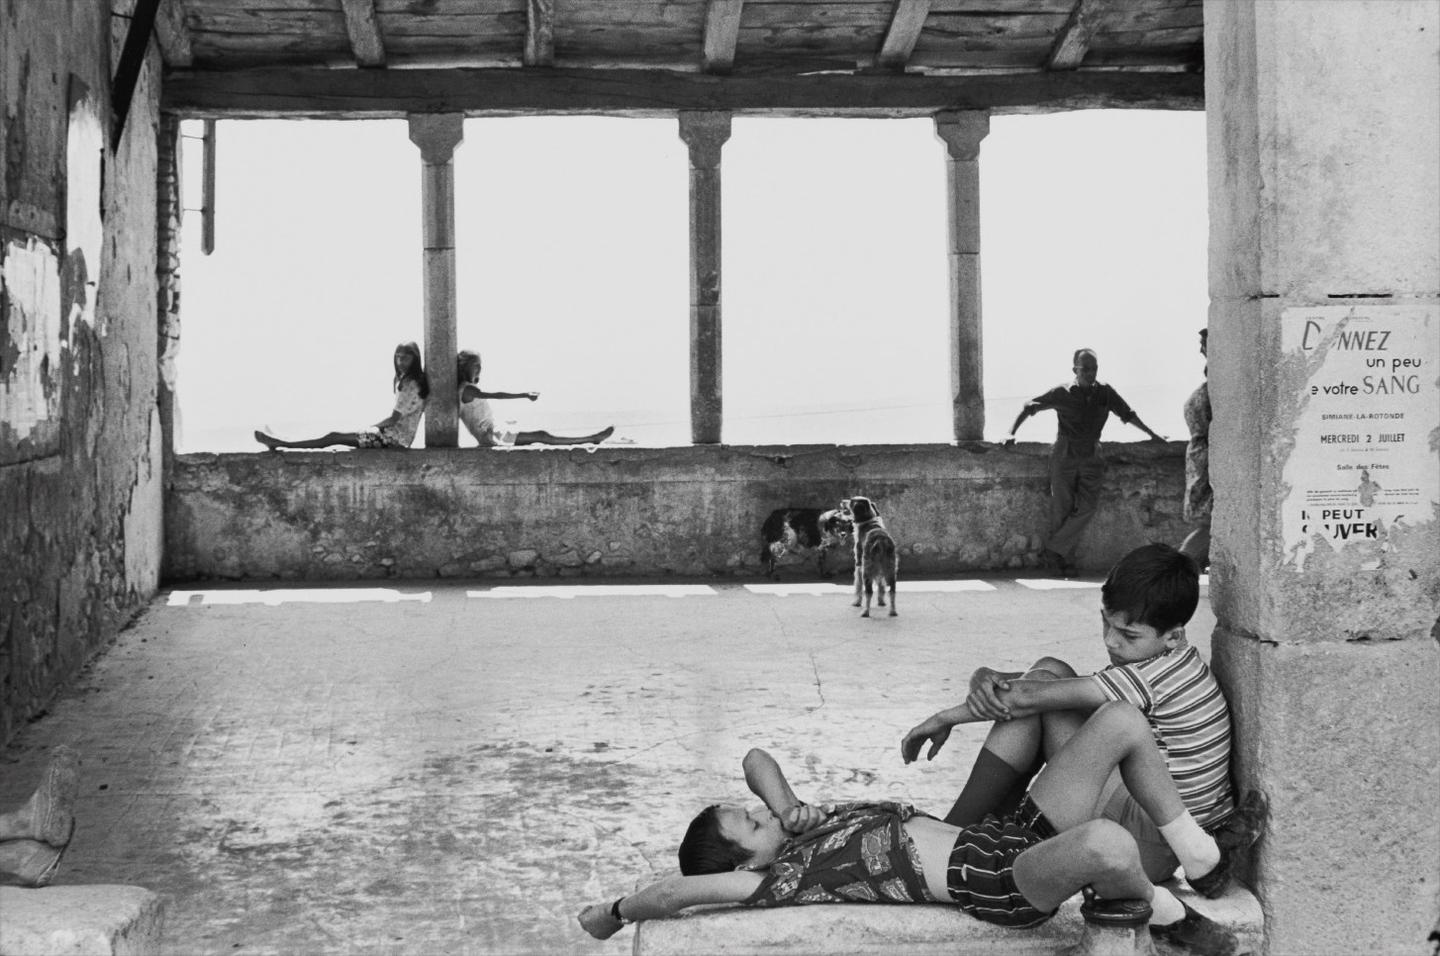 Henri Cartier-Bresson-Simiane-La-Rotonde, France-1969